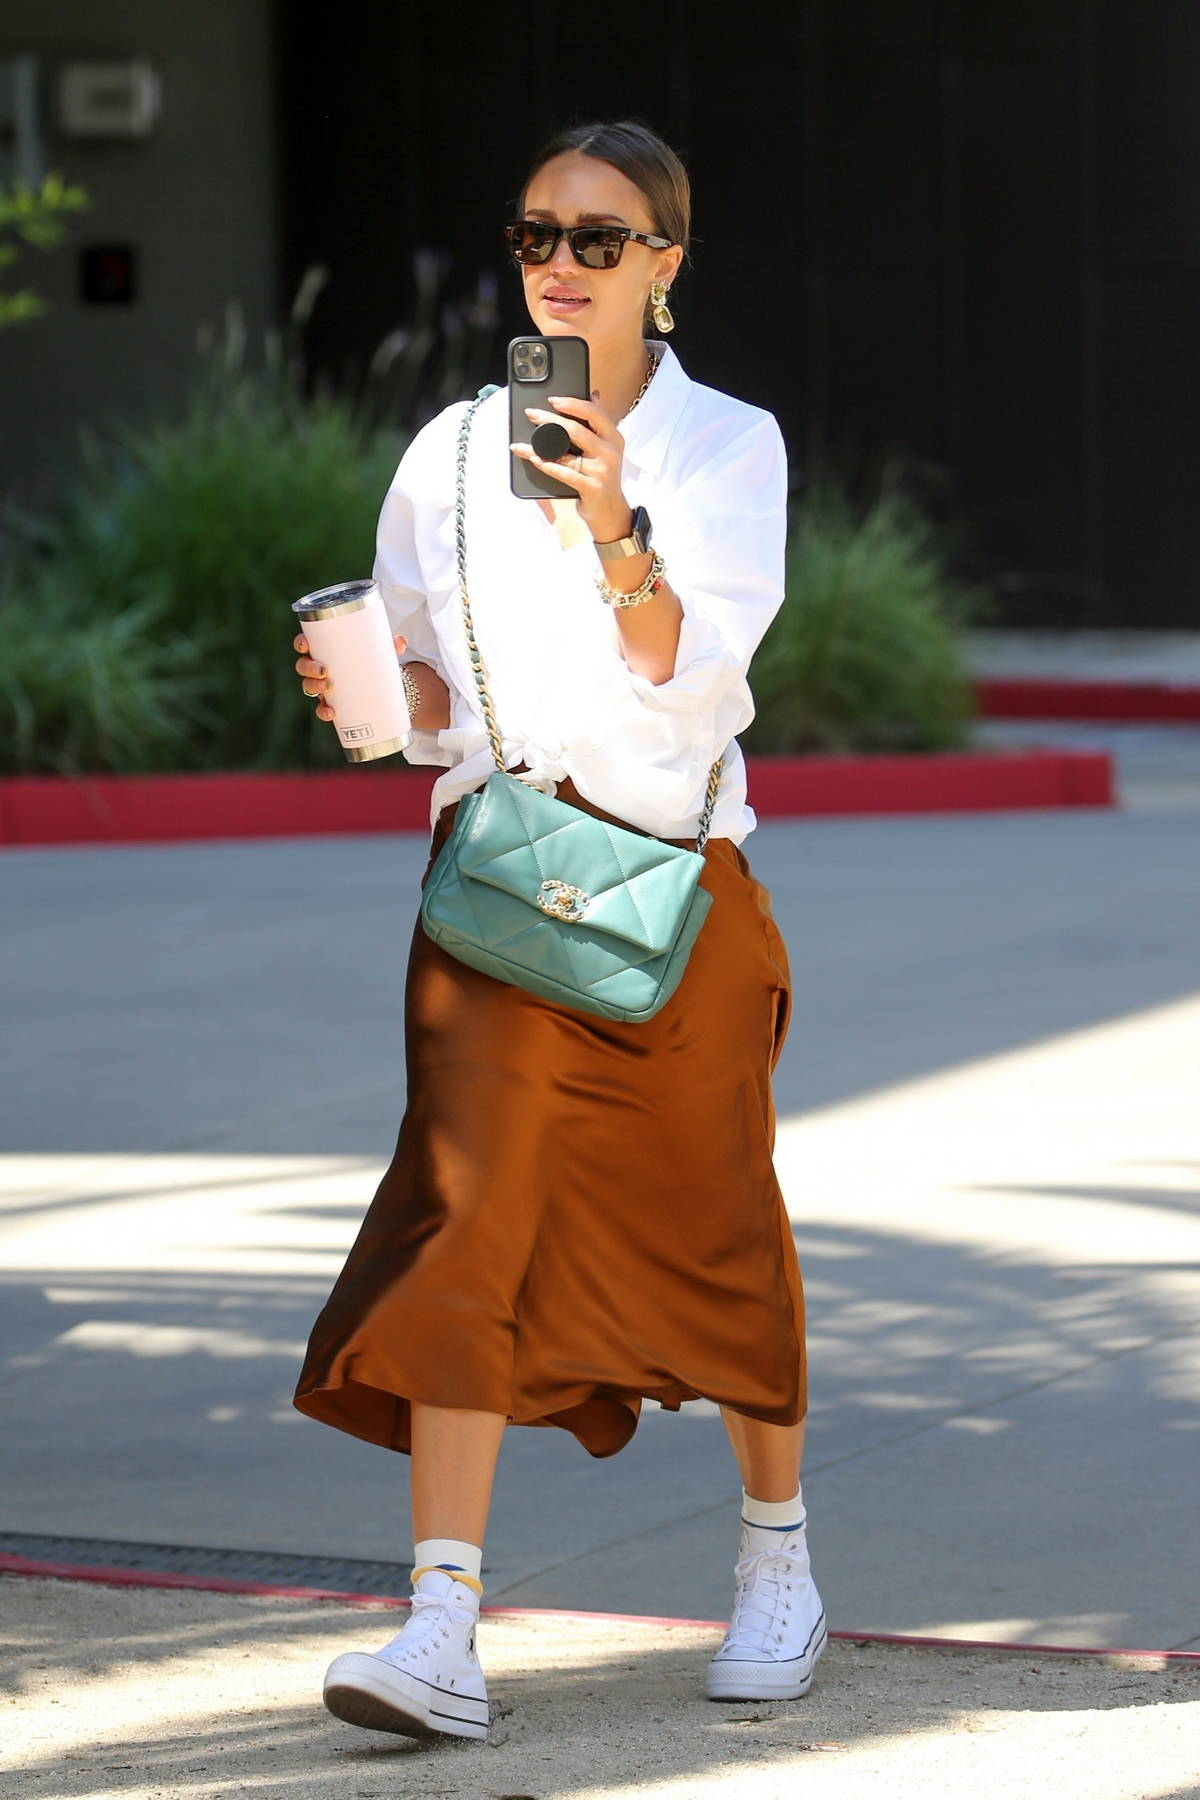 Jessica Alba looks great in a white blouse and burnt orange skirt while arriving at Honest Company Headquarters in Los Angeles